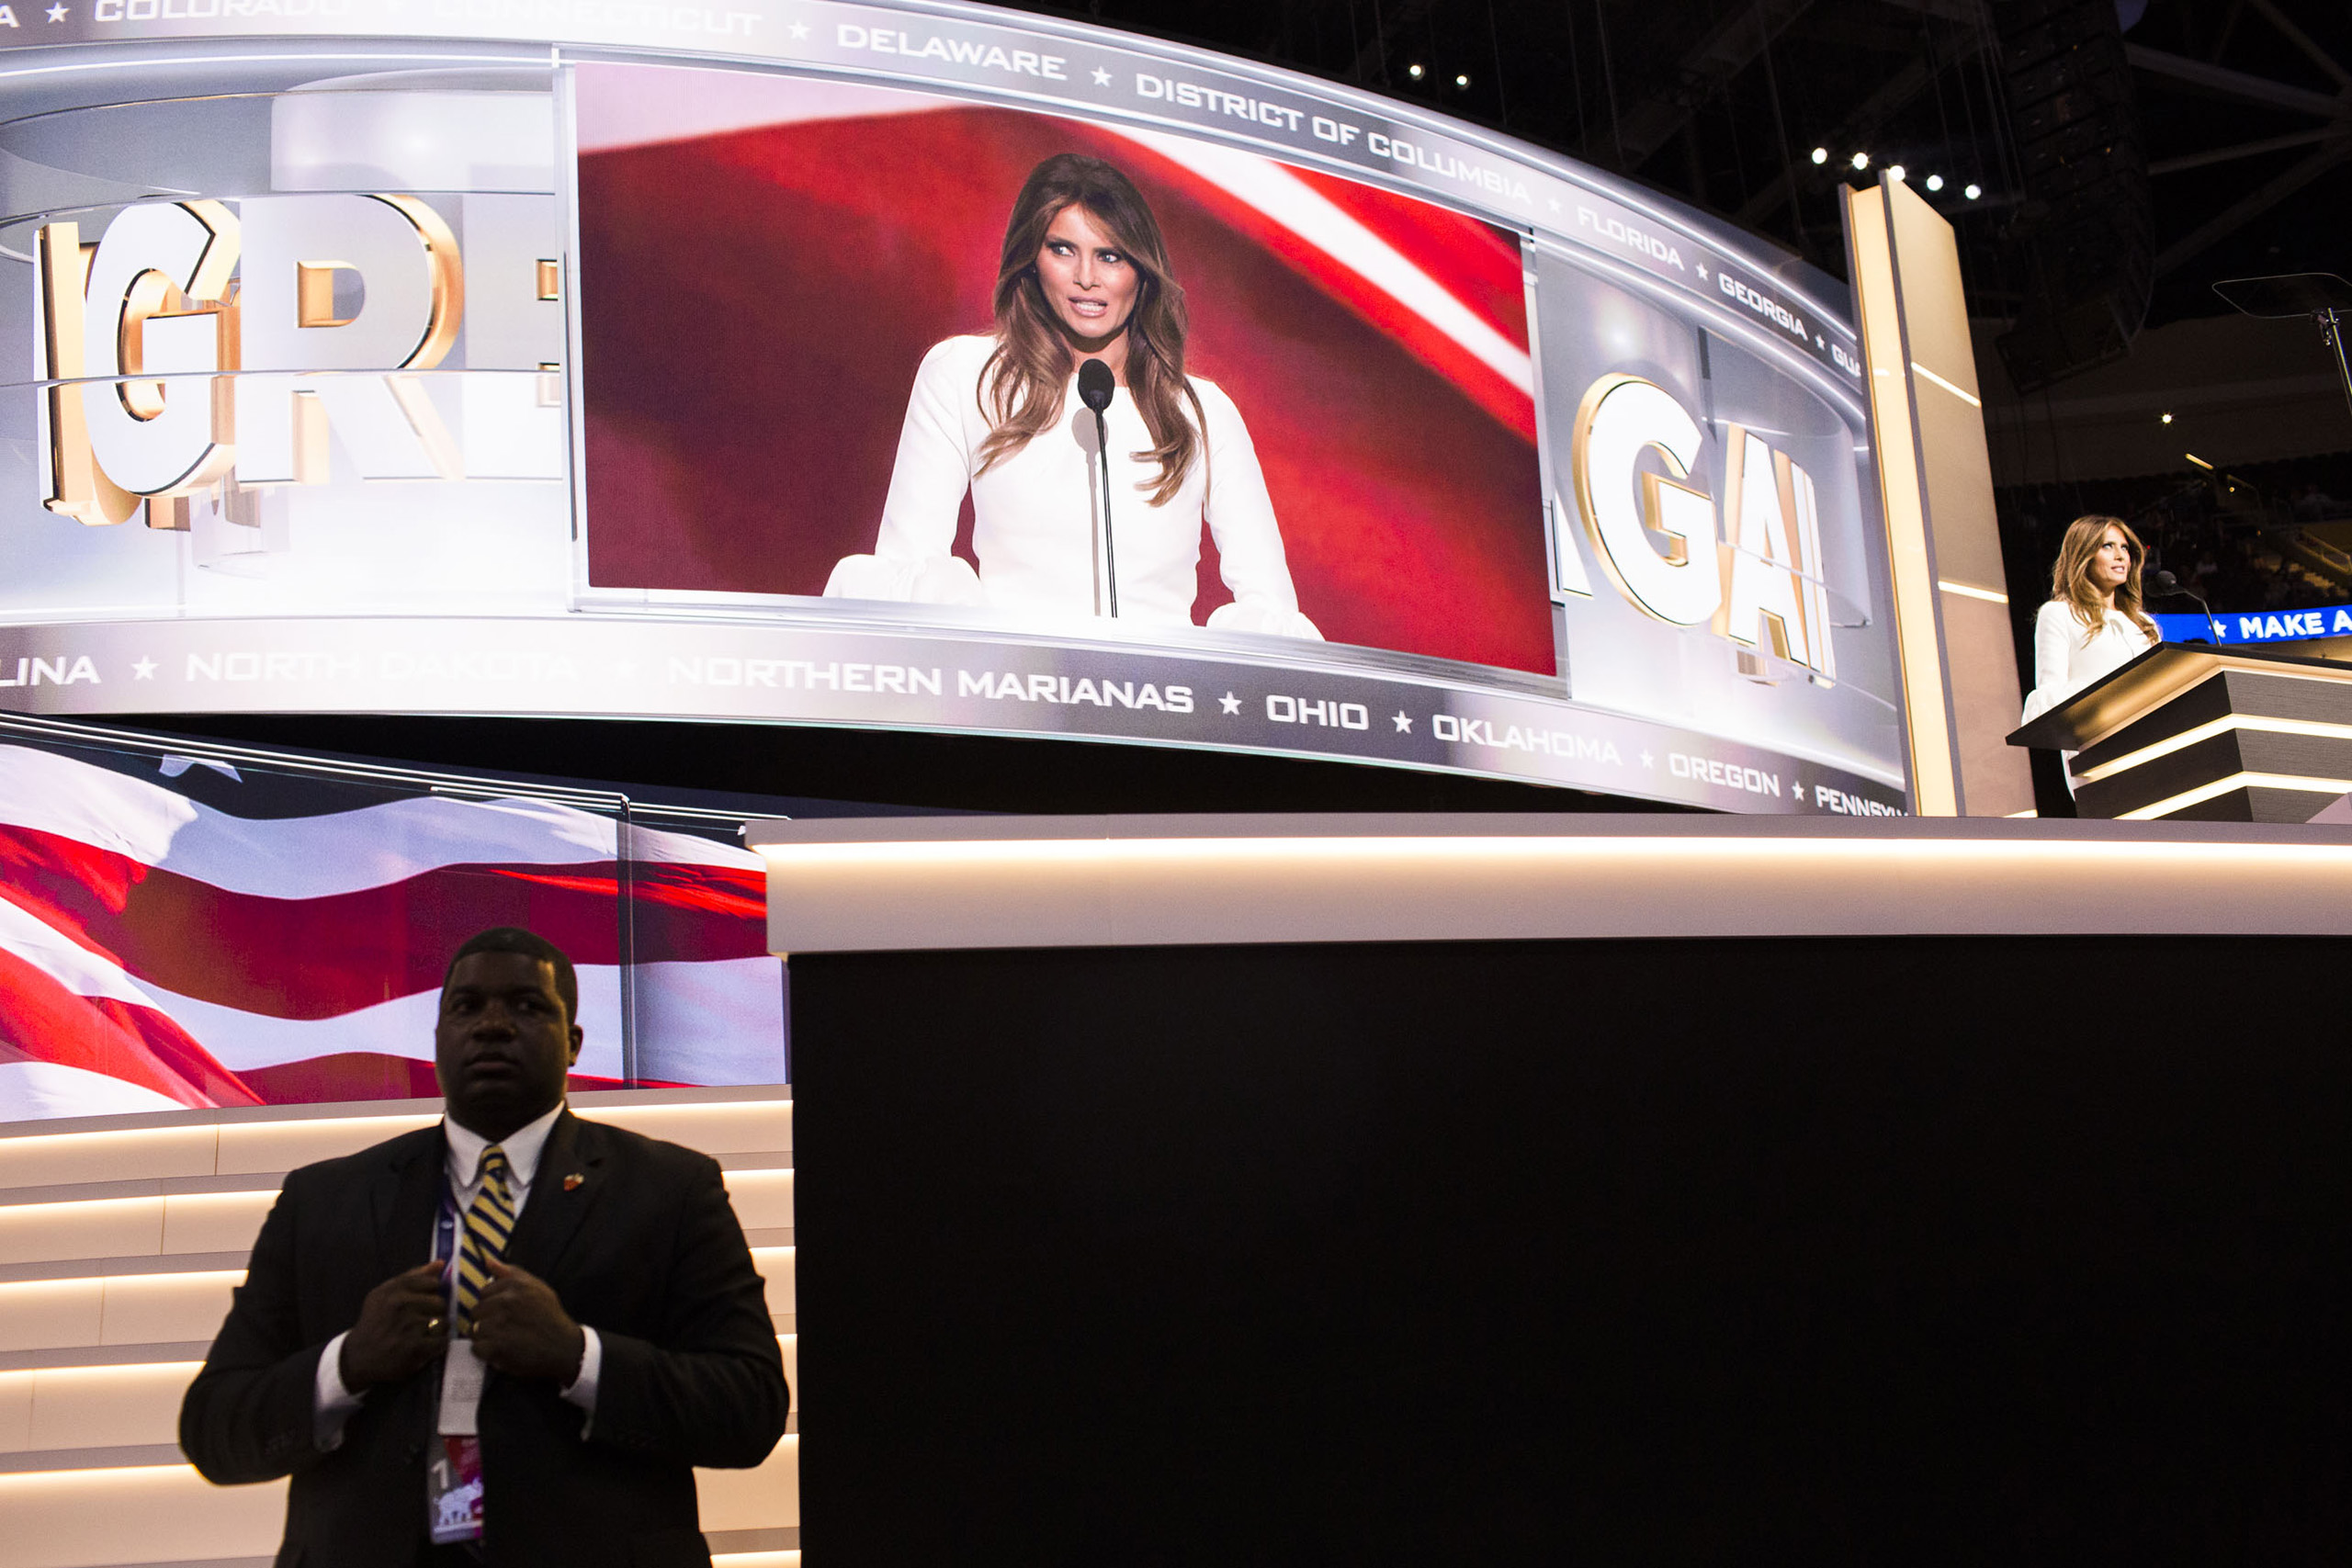 Melania Trump speaks at the Republican National Convention, July 18, 2016 in Cleveland.